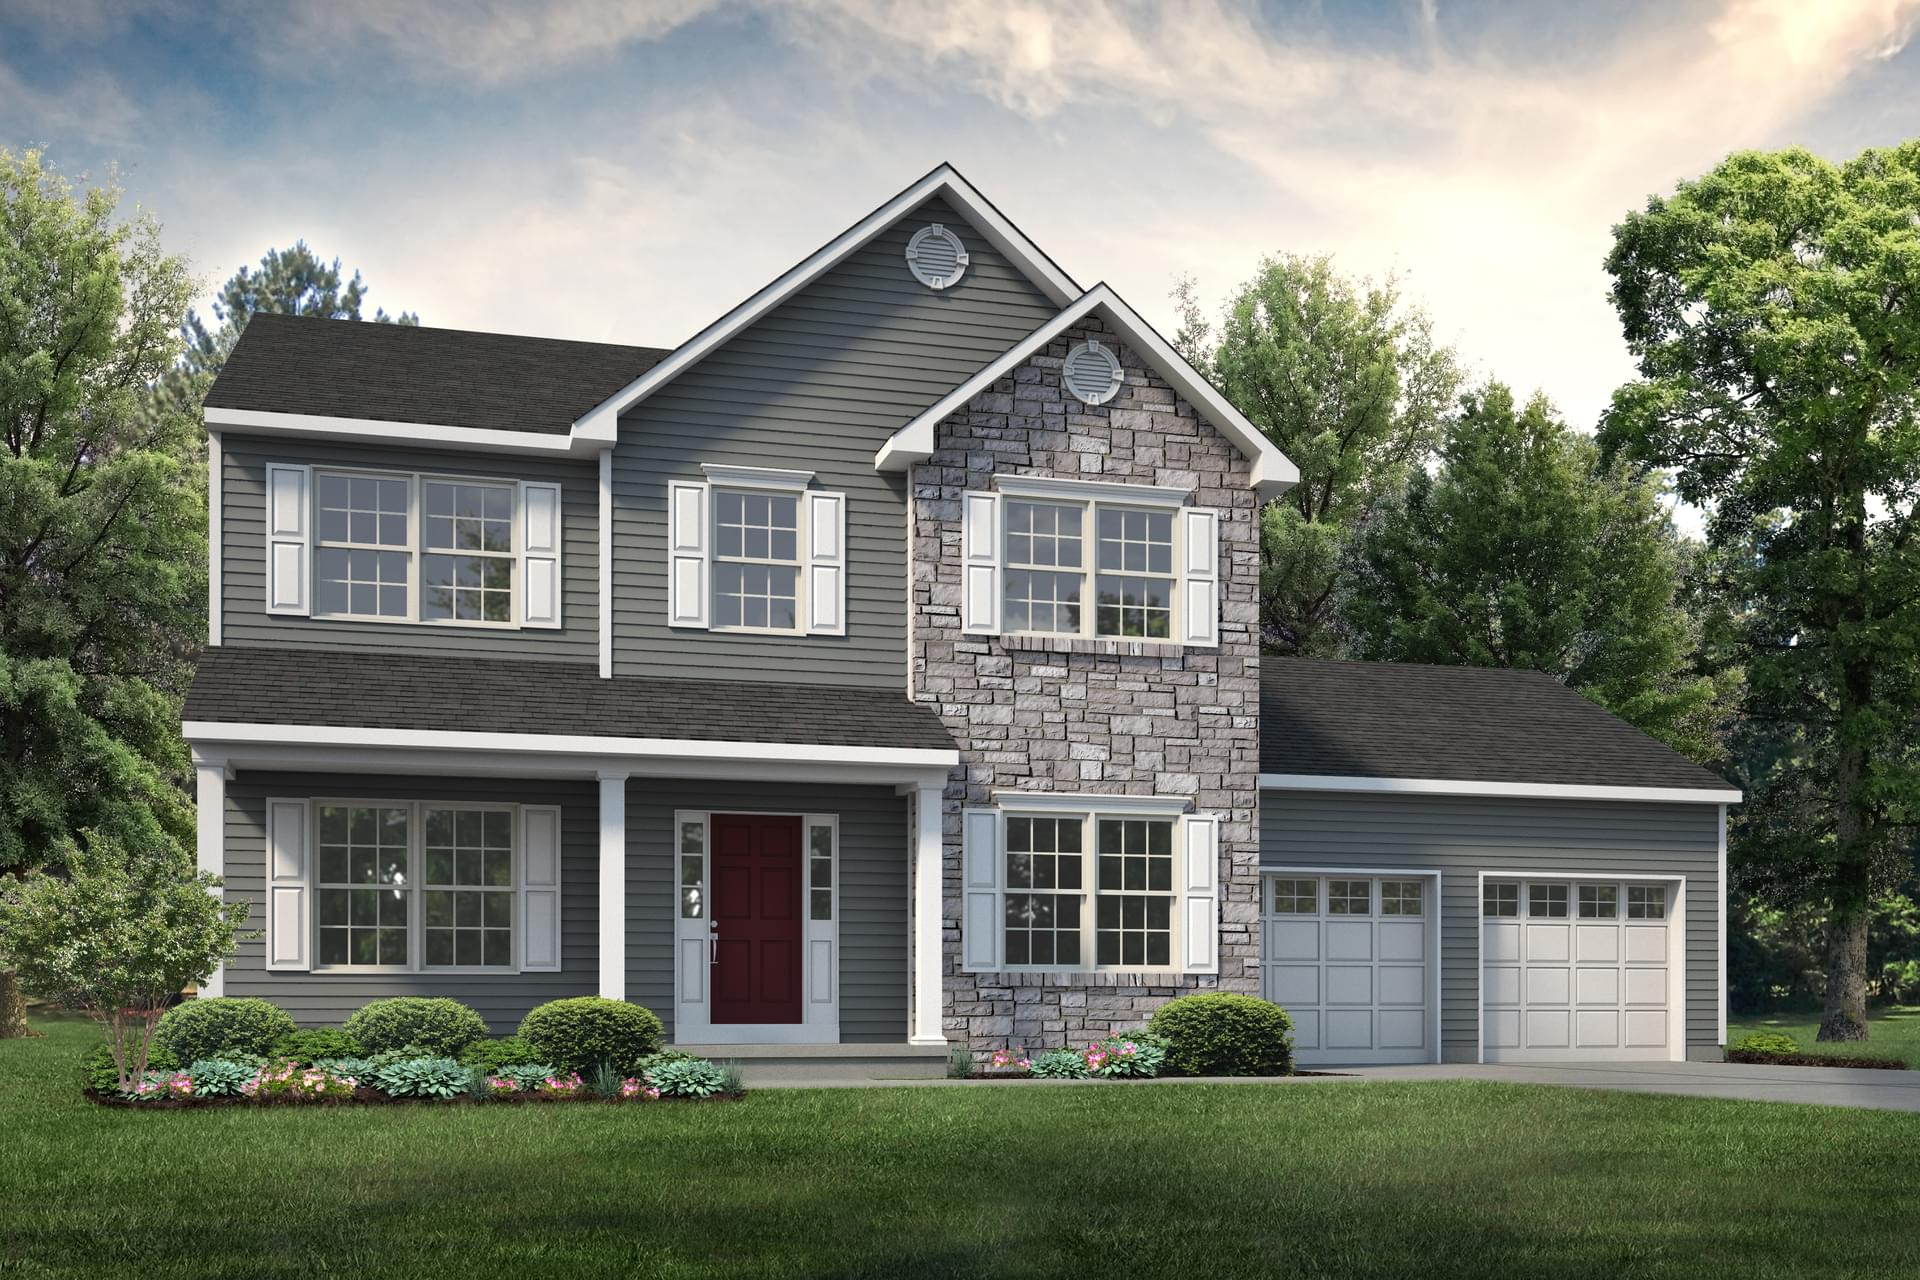 The Kingston New Home in Easton PA - Northwood Farms